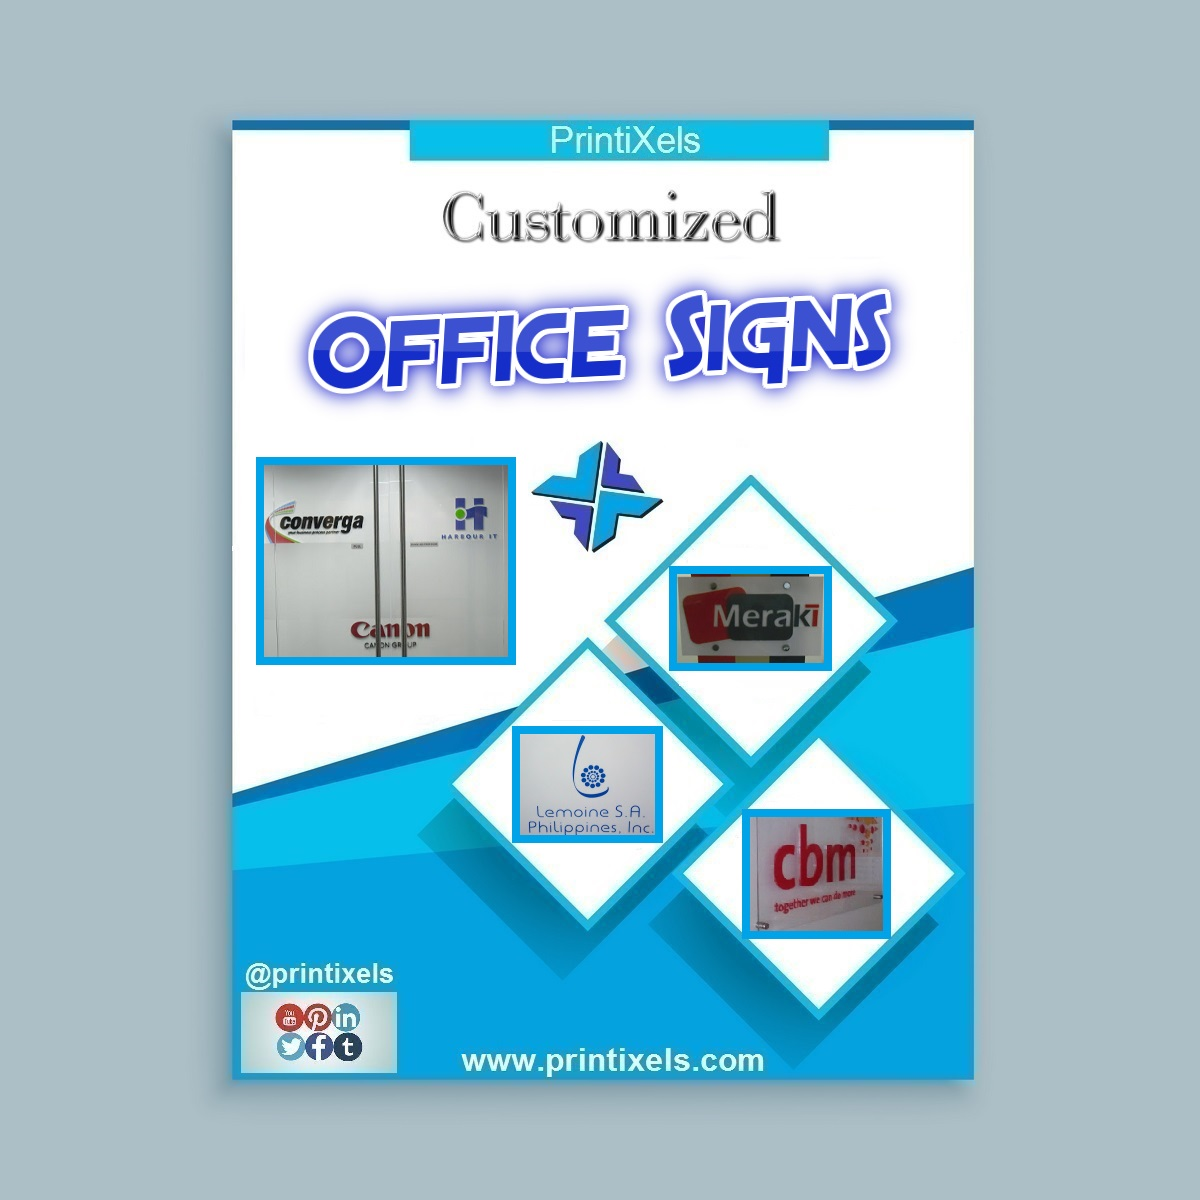 Customized Office Signs Philippines